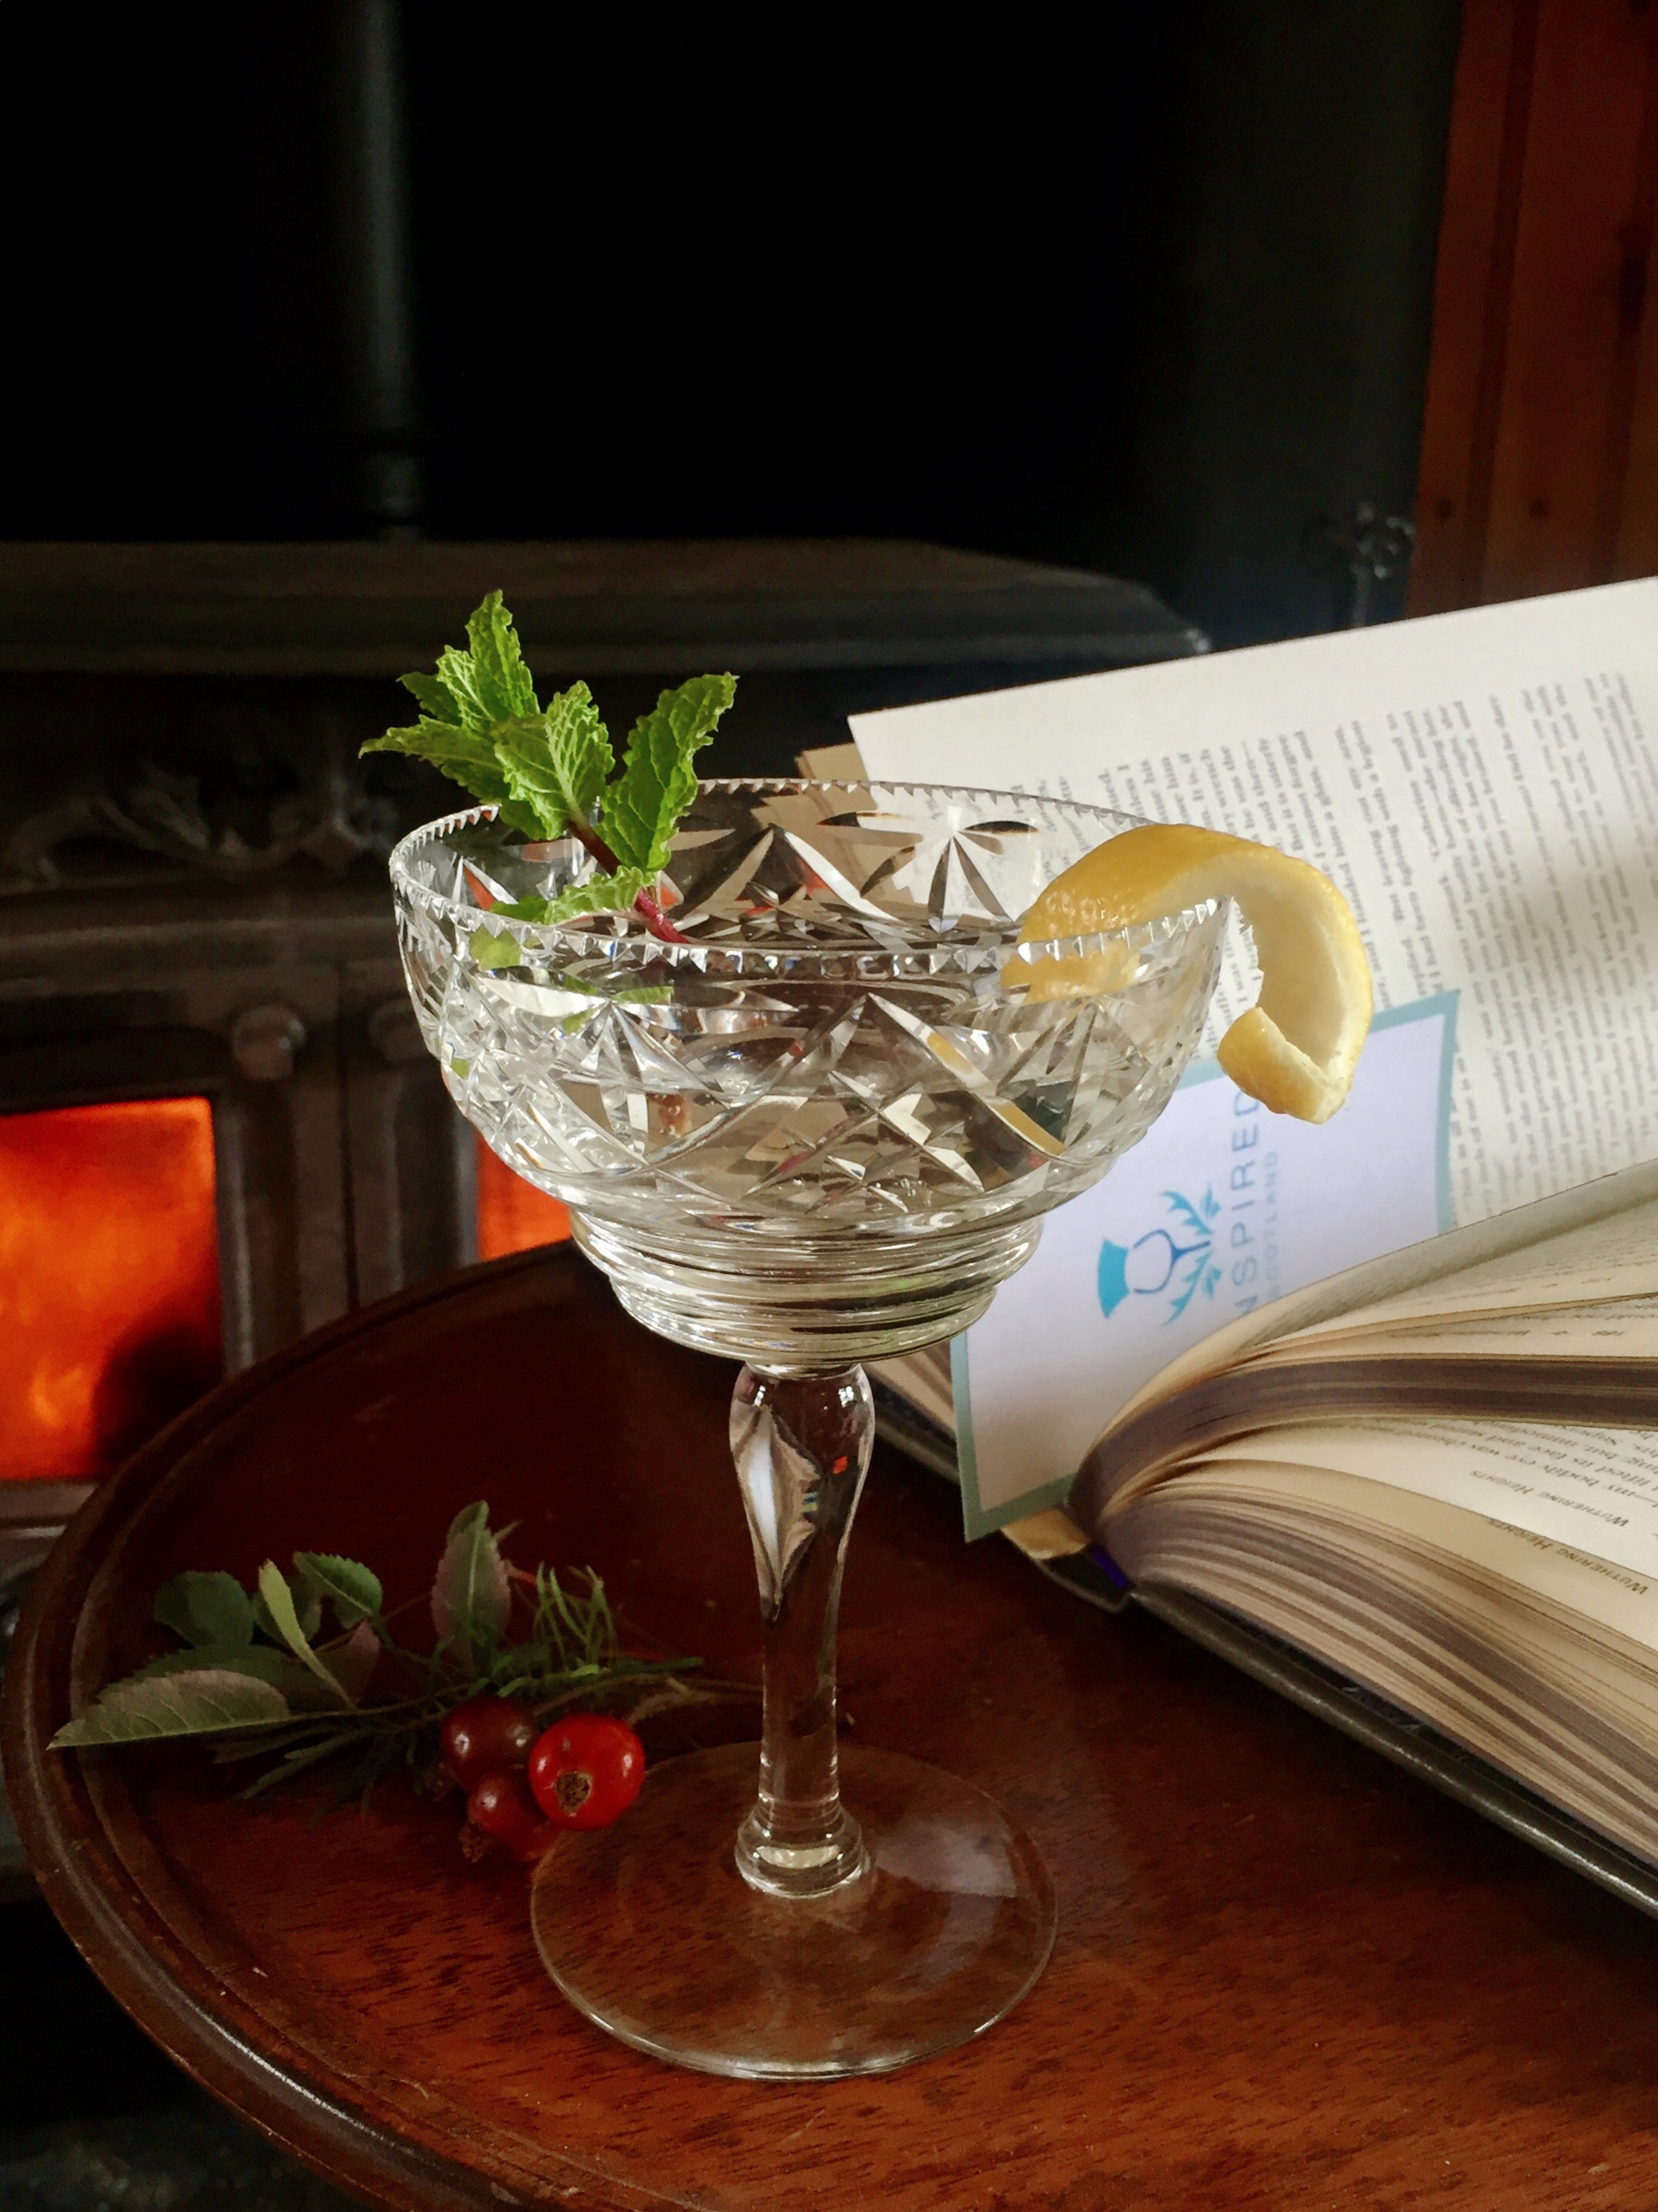 Crystal gin with book on table